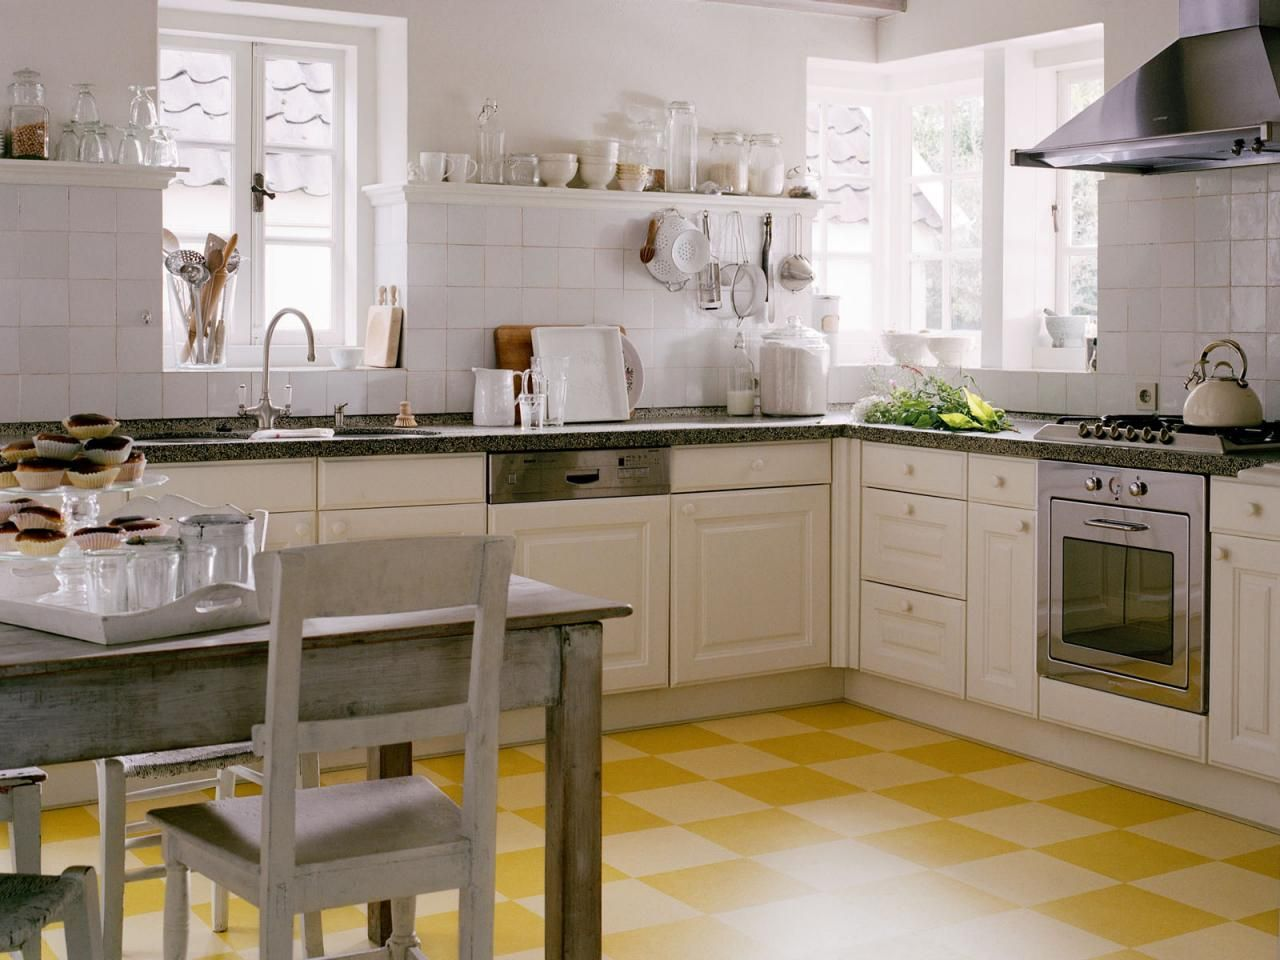 Linoleum Kitchen Floors | Kitchen floors, Flooring types and Kitchens